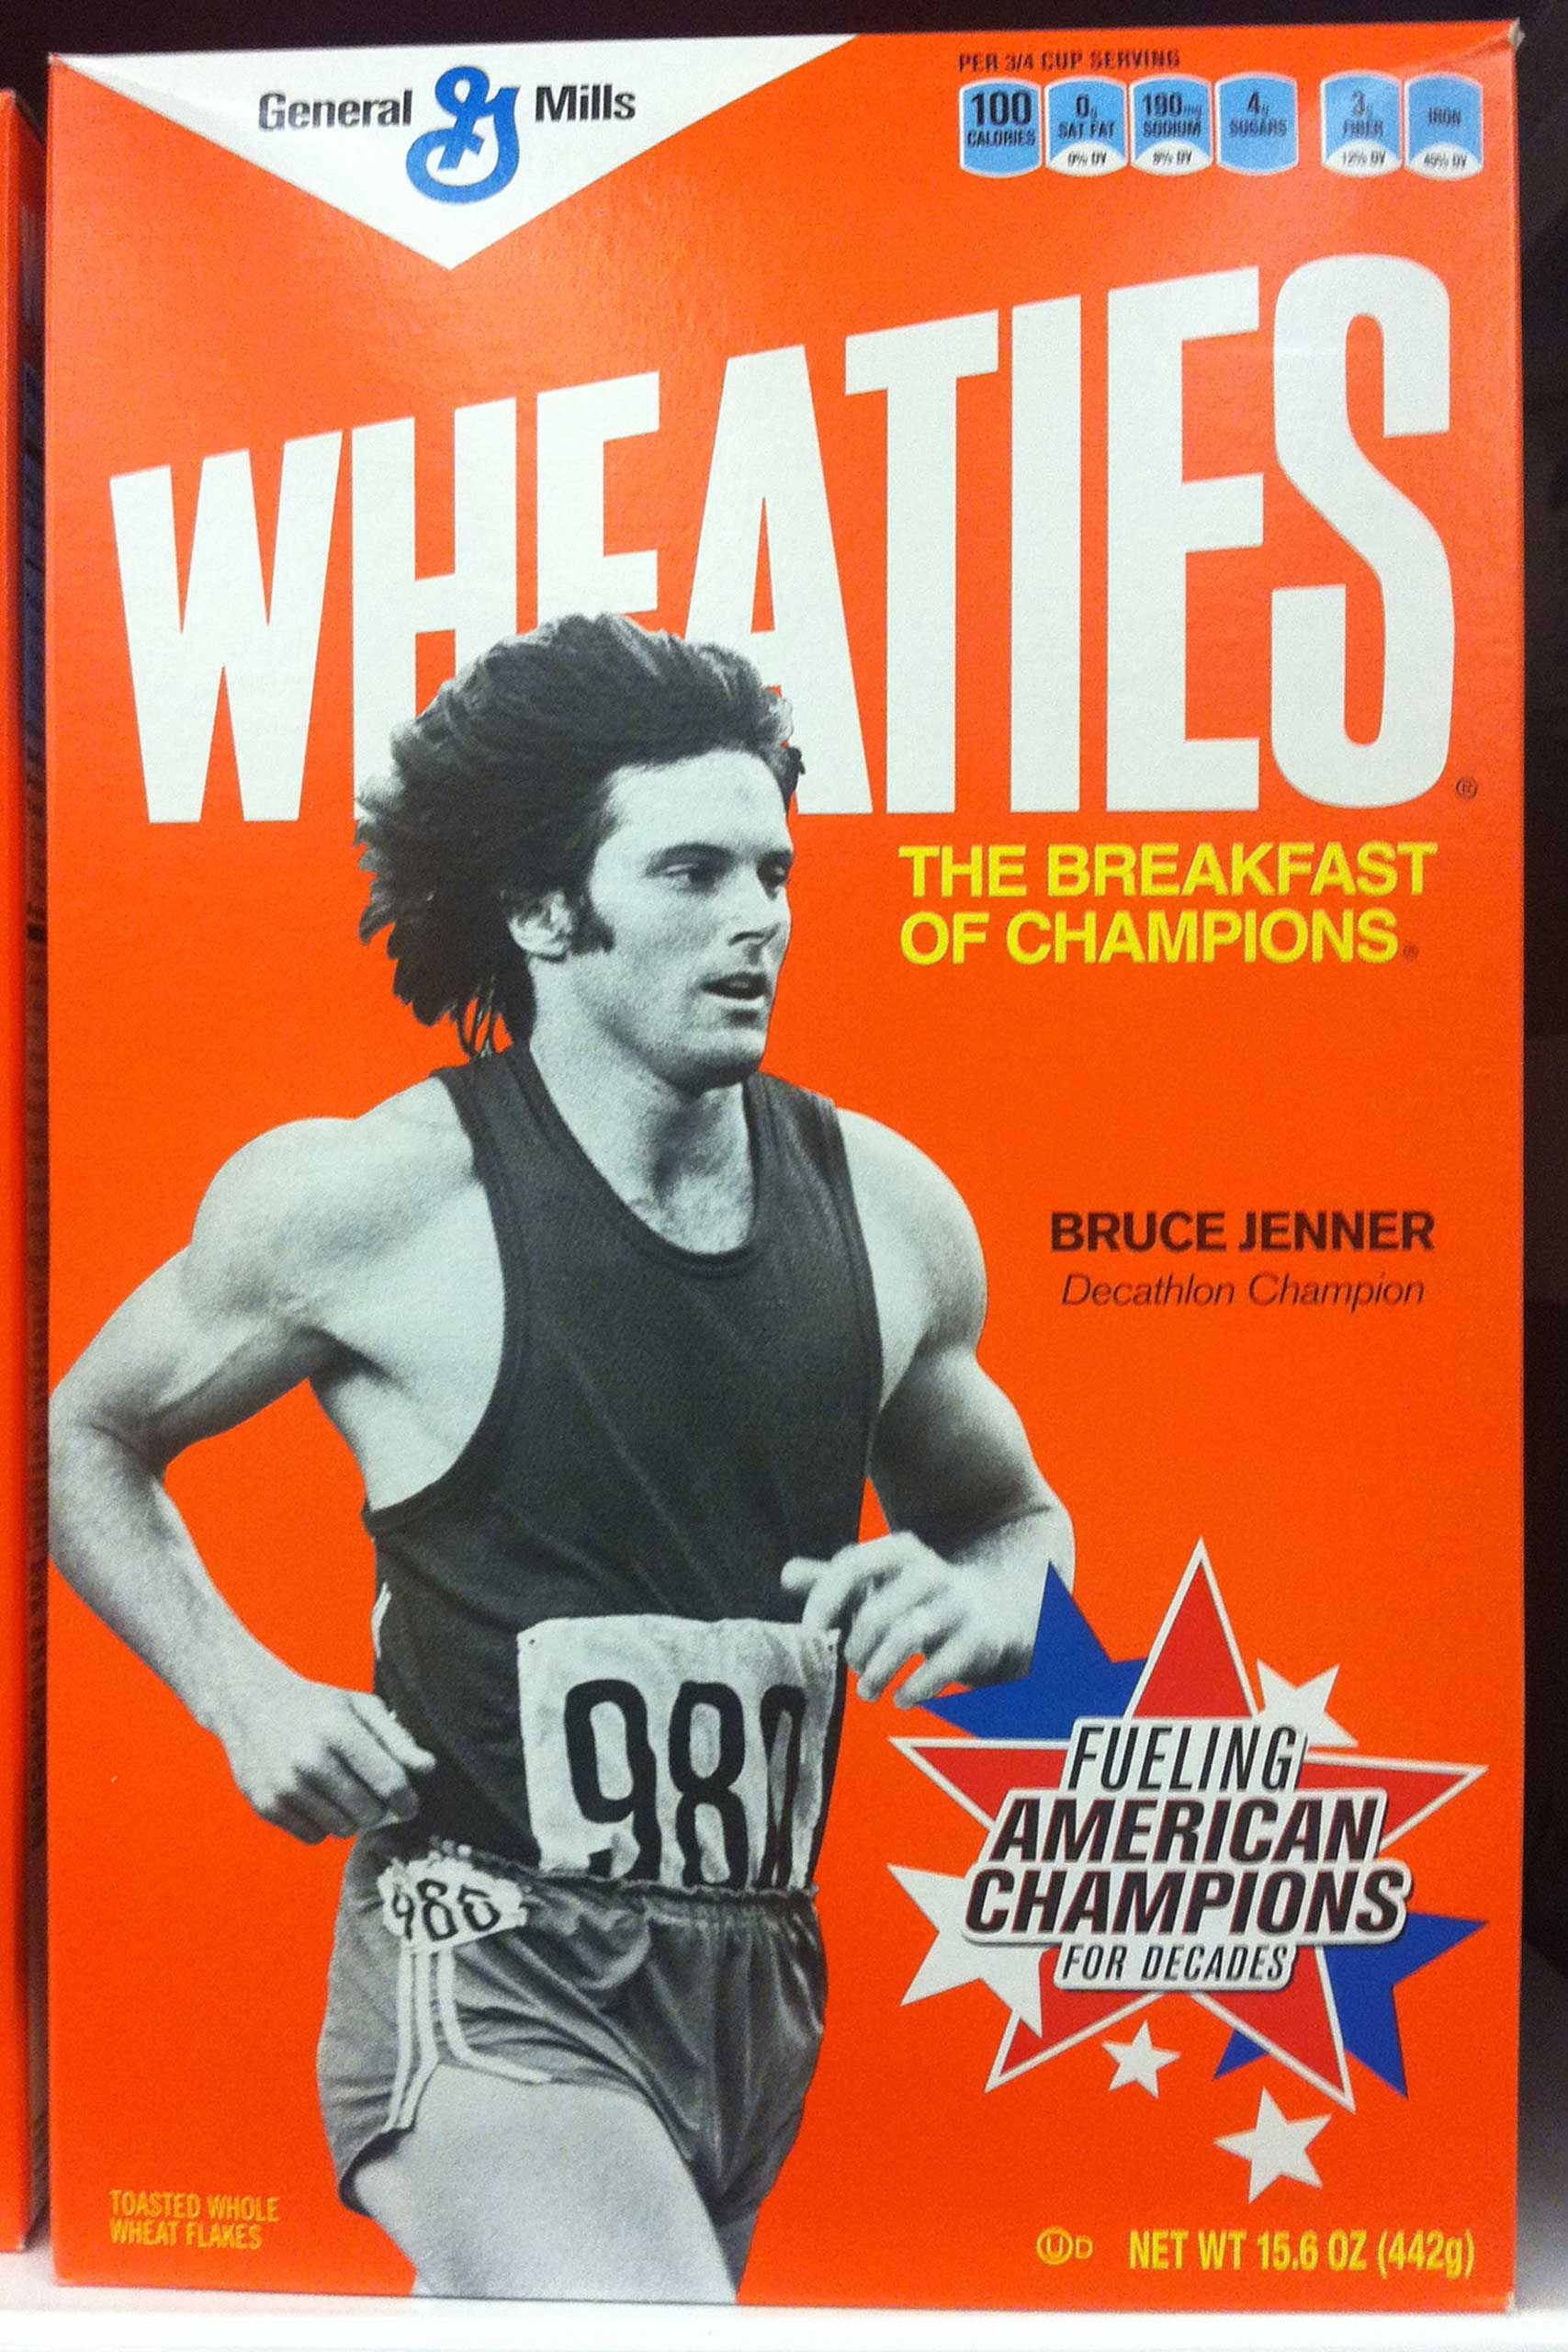 Bruce Jenner finds his way onto the breakfast tables of America. The 'Keeping Up with the Kardashians' star is shown in his youthful glory on the front cover of 'Wheaties' cereal boxes on sale now.